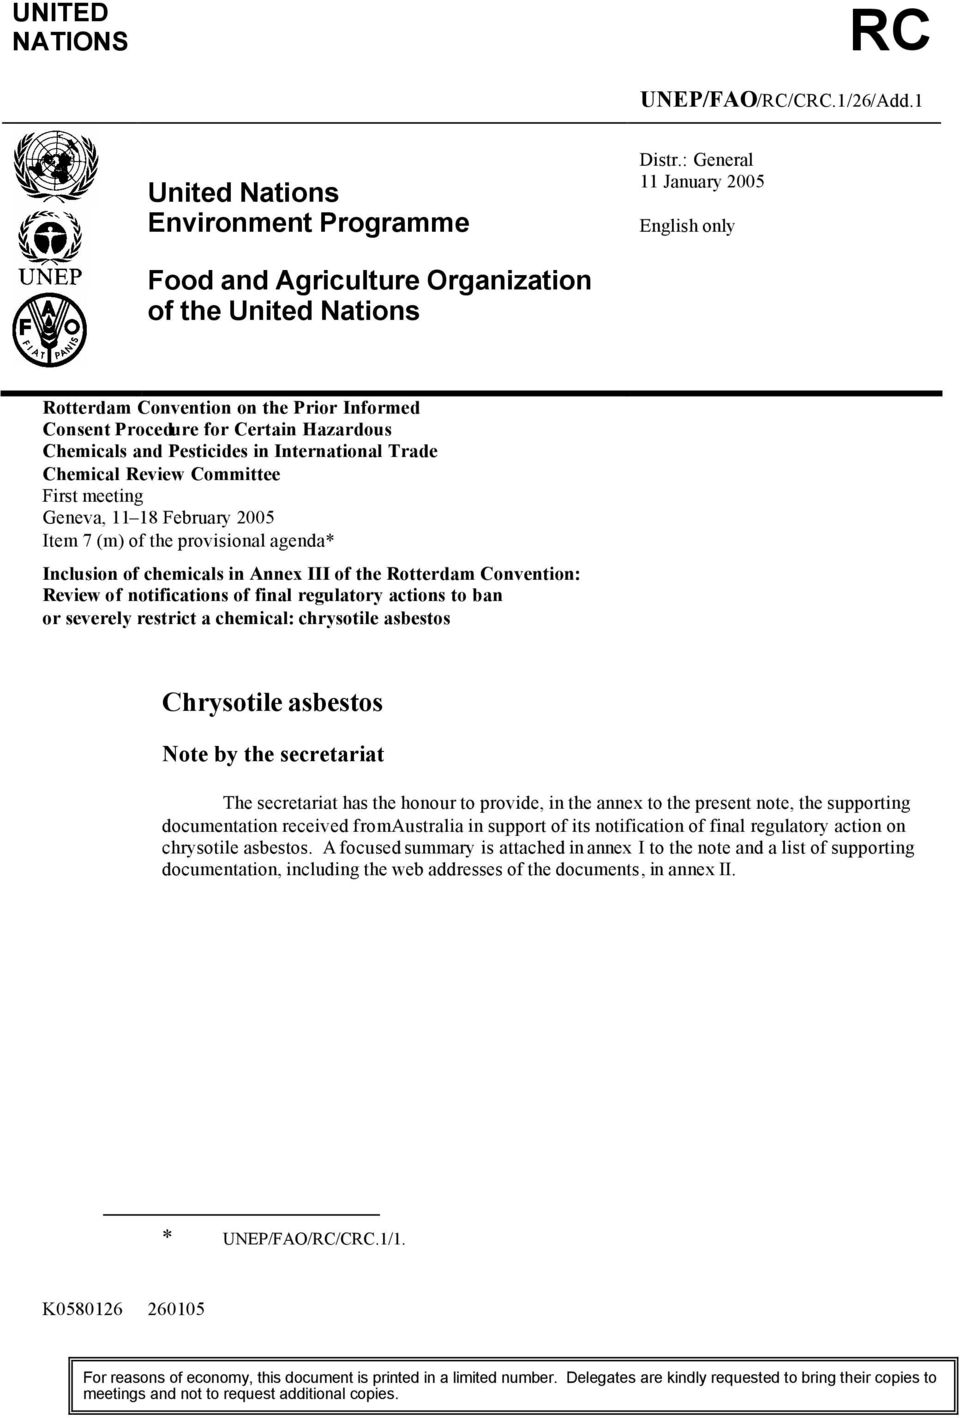 Pesticides in International Trade Chemical Review Committee First meeting Geneva, 11 18 February 2005 Item 7 (m) of the provisional agenda* Inclusion of chemicals in Annex III of the Rotterdam